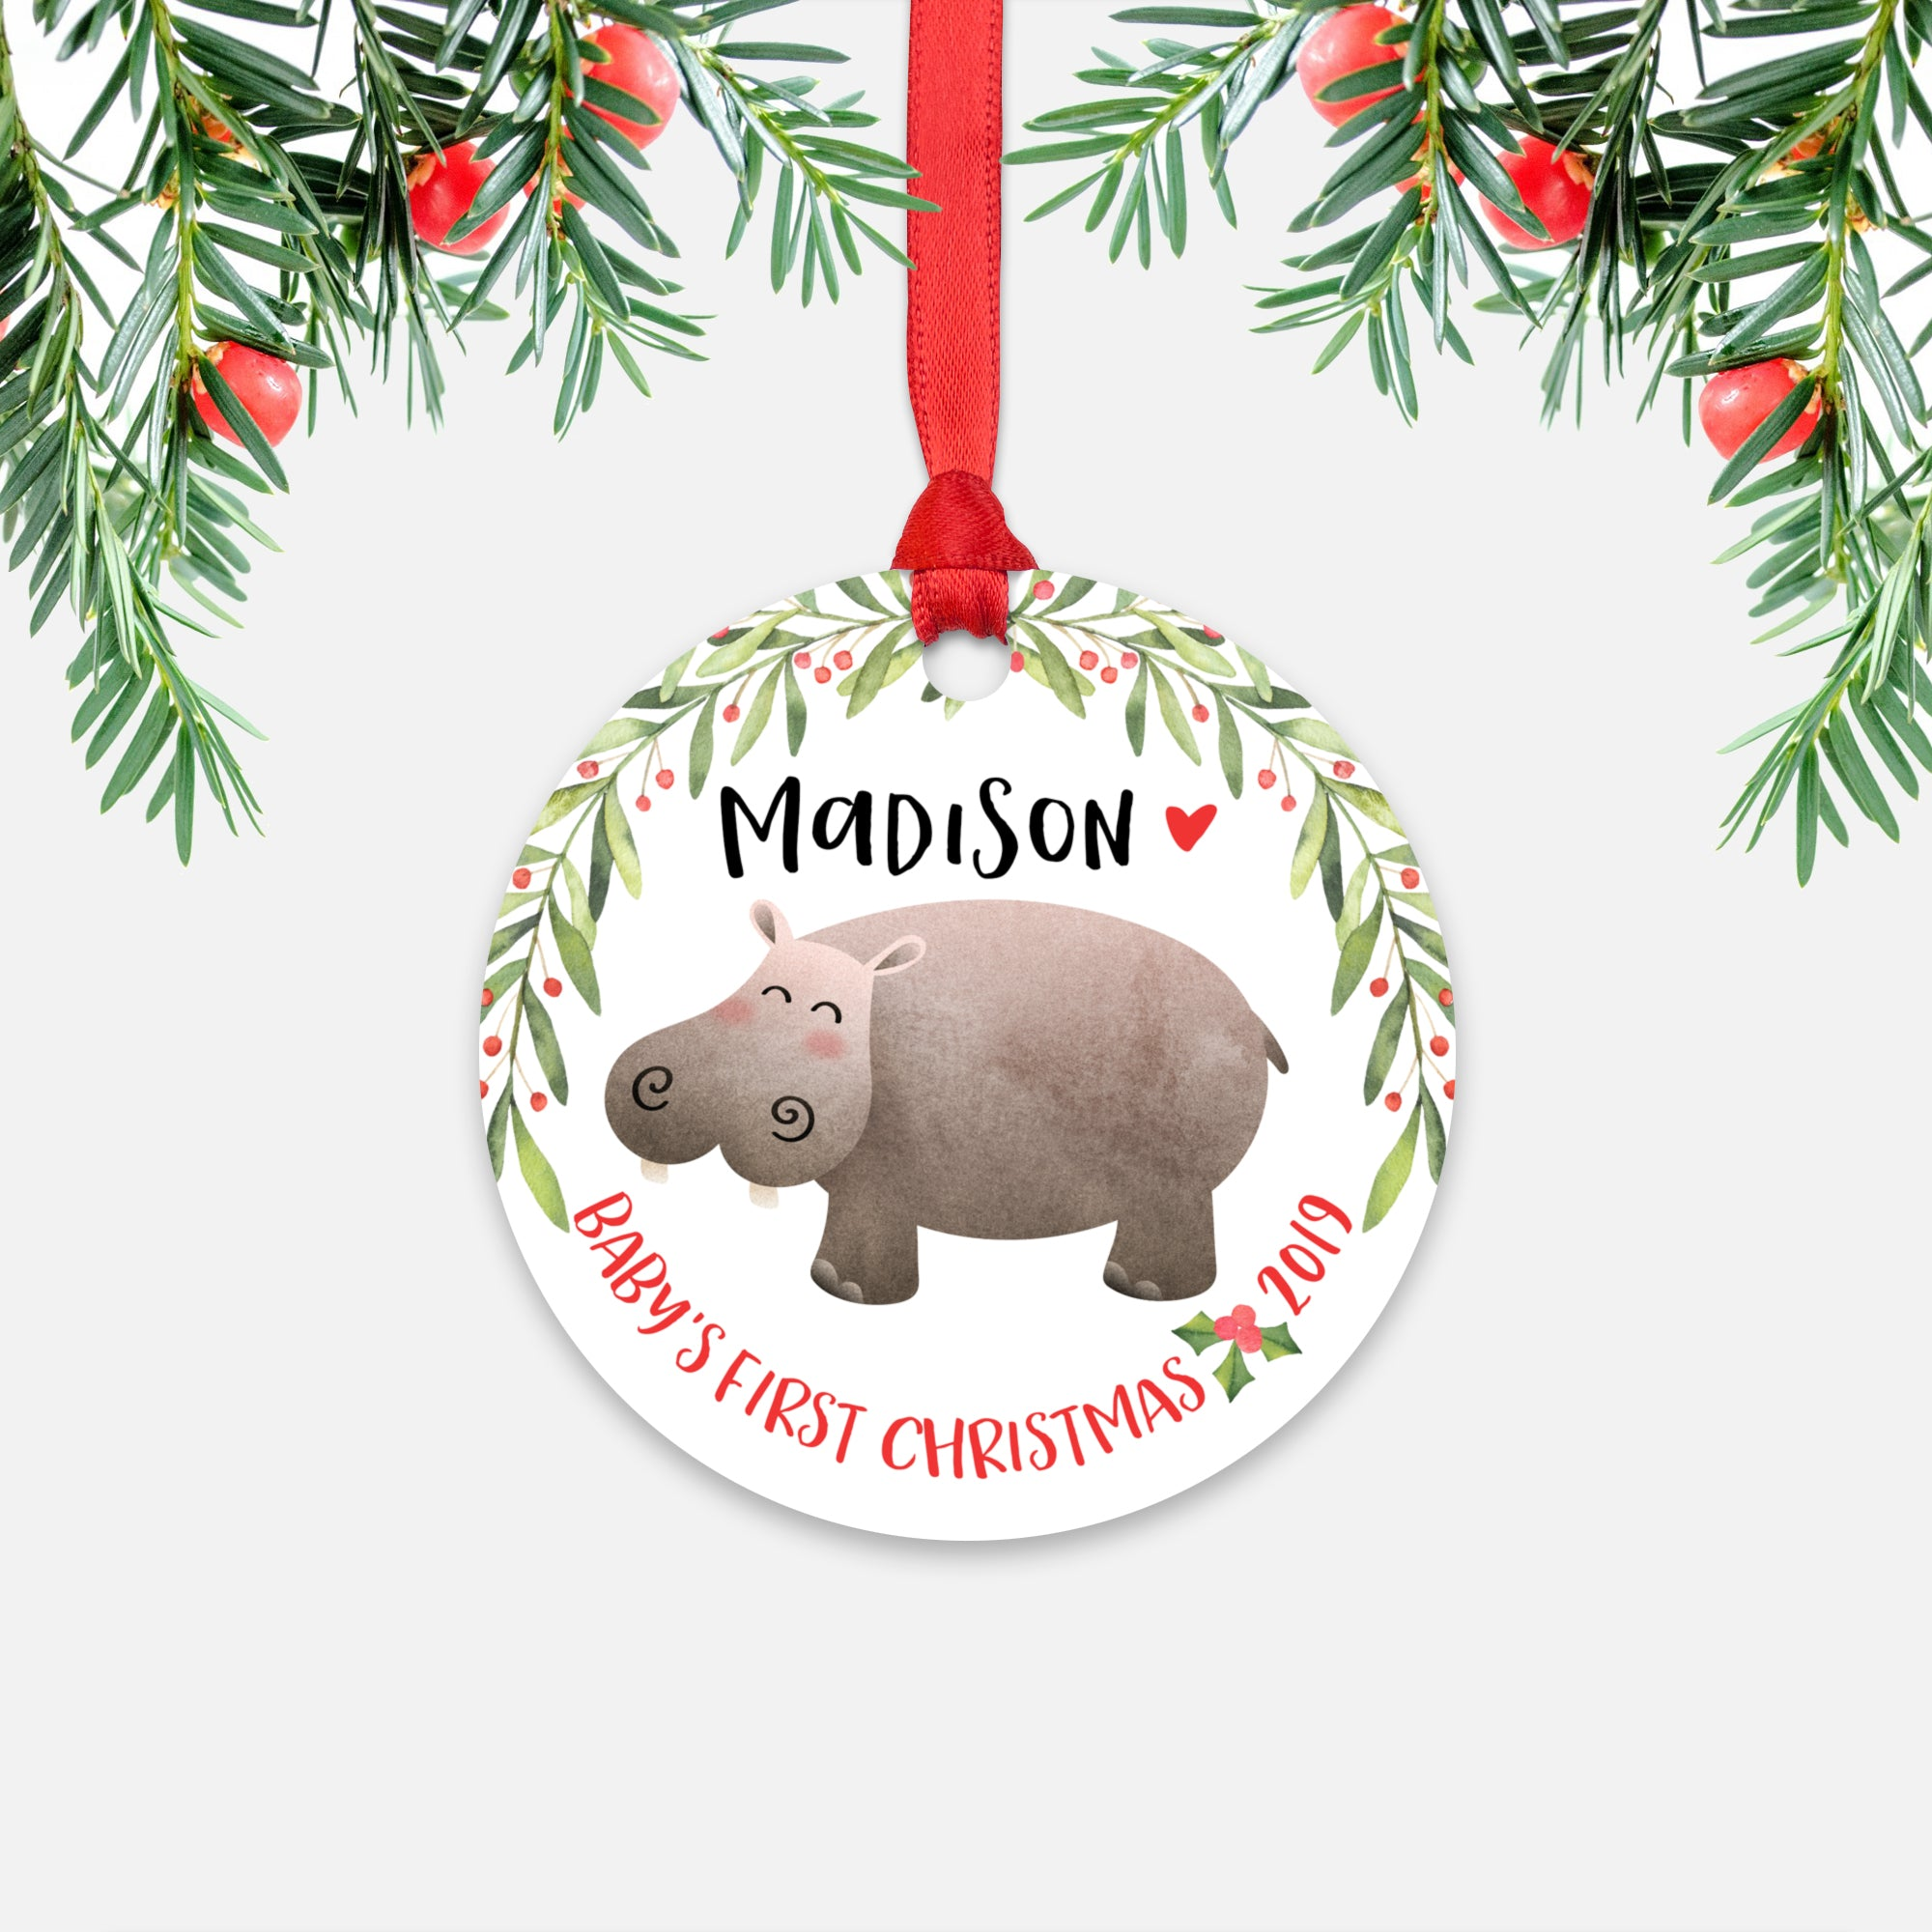 Hippo Hippopotamus Personalized Baby's First Christmas Ornament for Baby Boy or Baby Girl - Cute Safari Jungle Animal Baby 1st Holidays Decoration - Custom Christmas Gift Idea for New Parents - Round Aluminum - by Happy Cat Prints